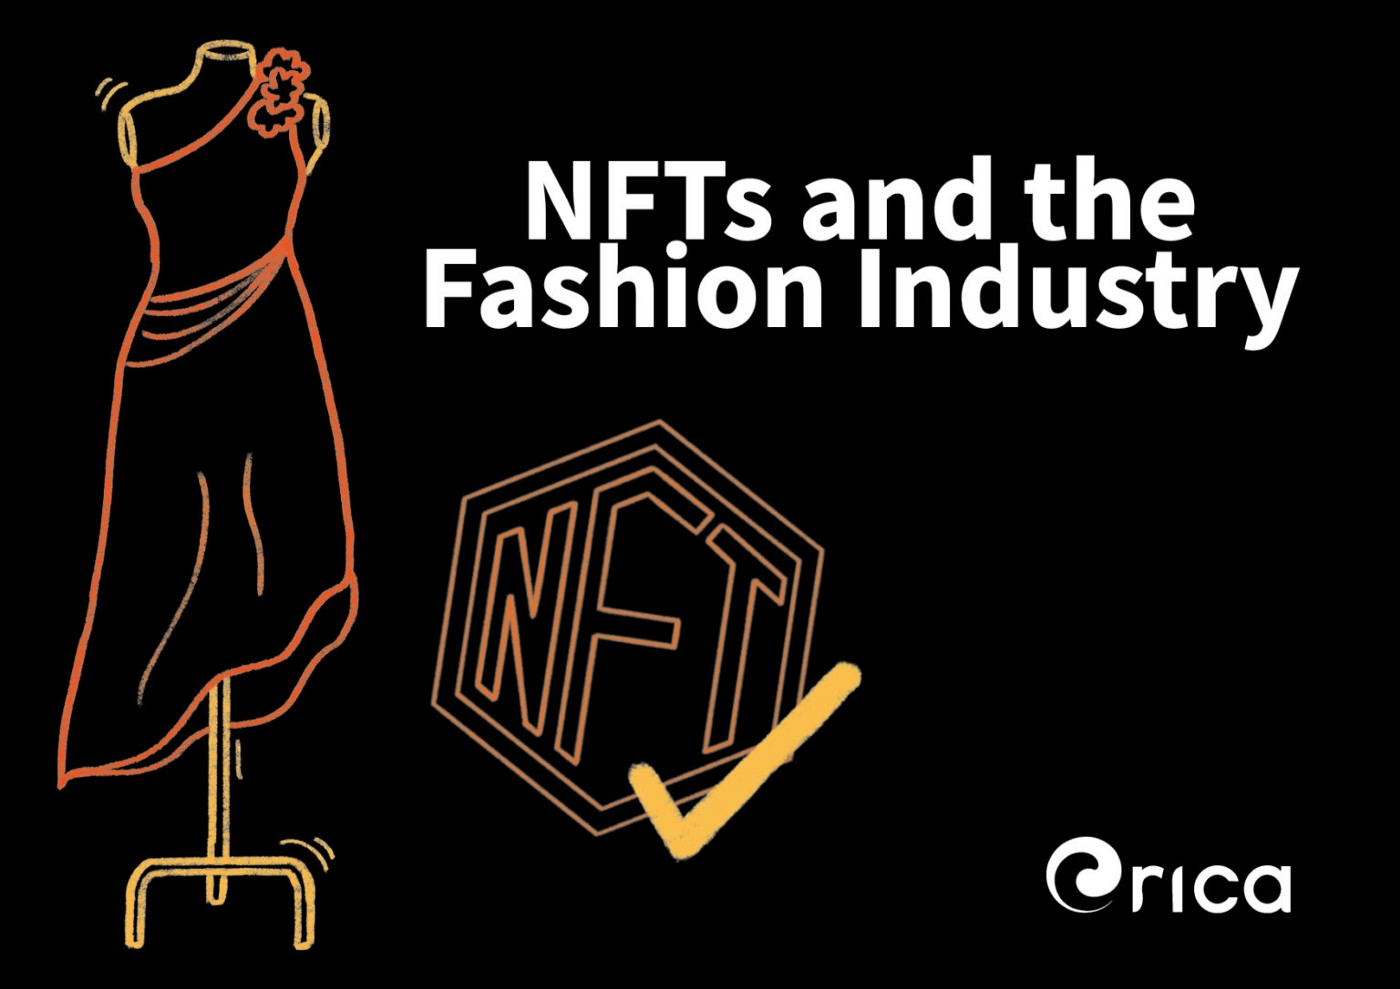 NFTs and the fashion industry